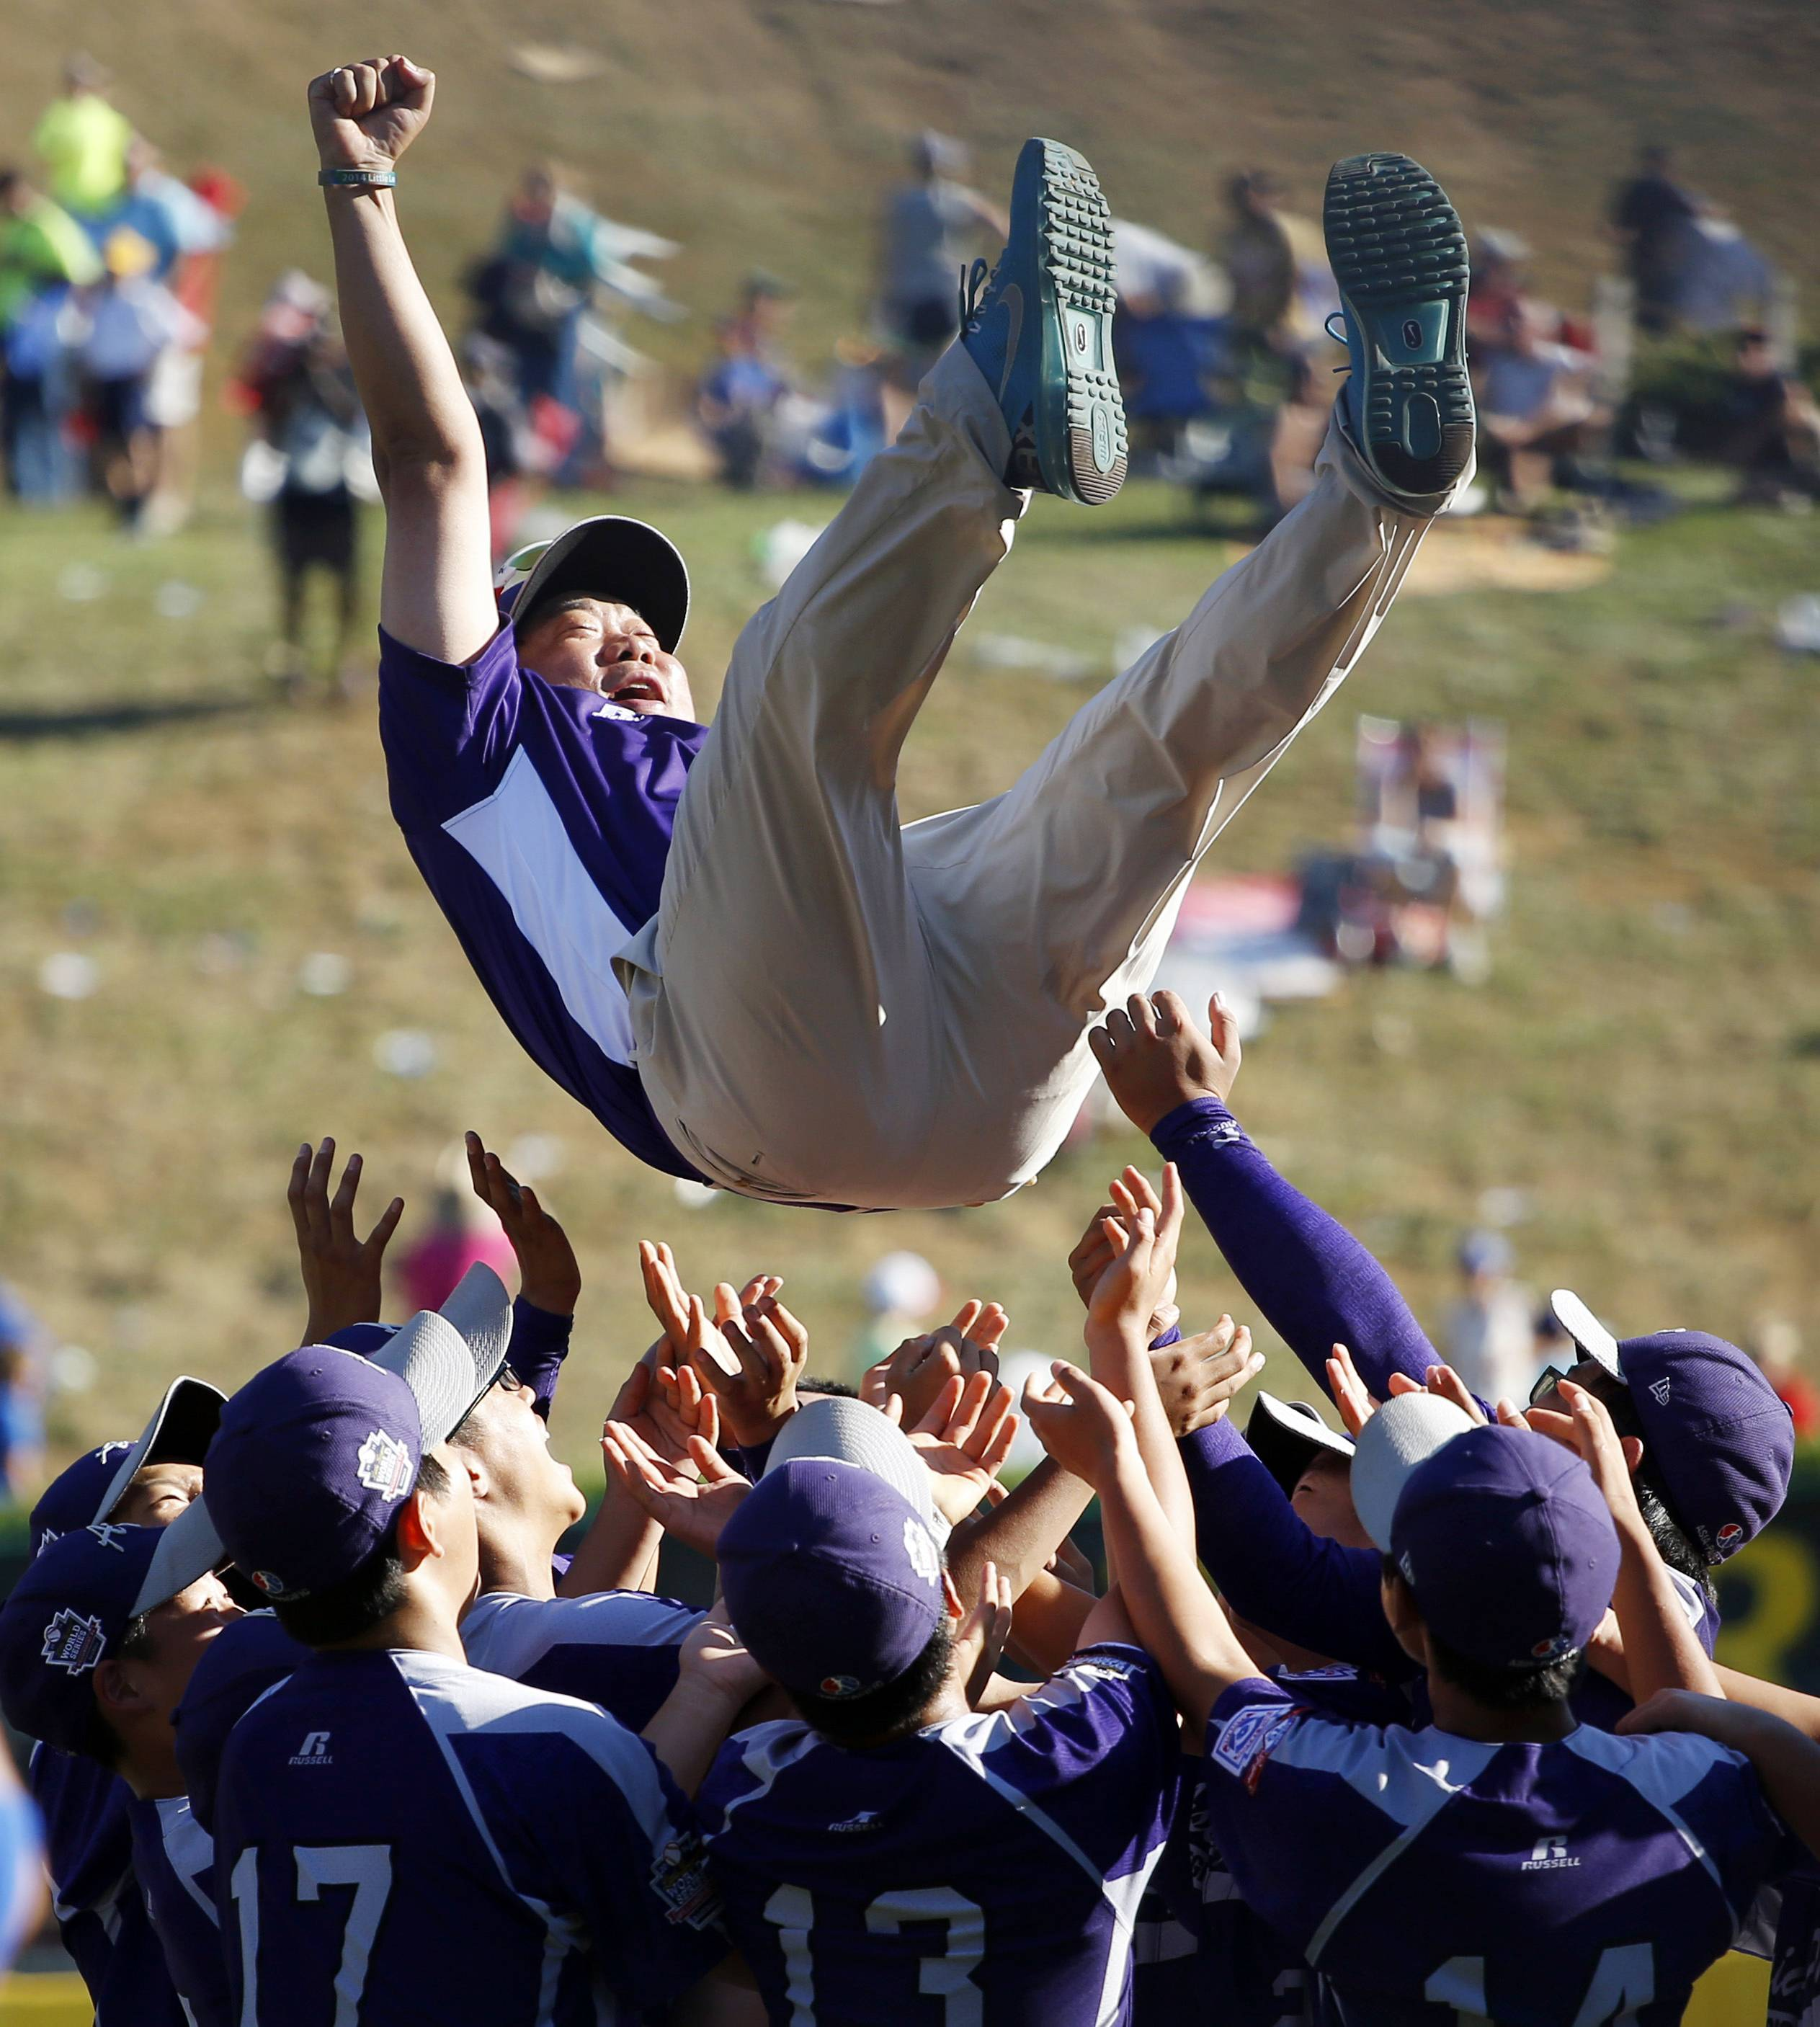 South Korea players toss their coach into the air after winning the championship baseball game against Chicago at the Little League World Series, Sunday.